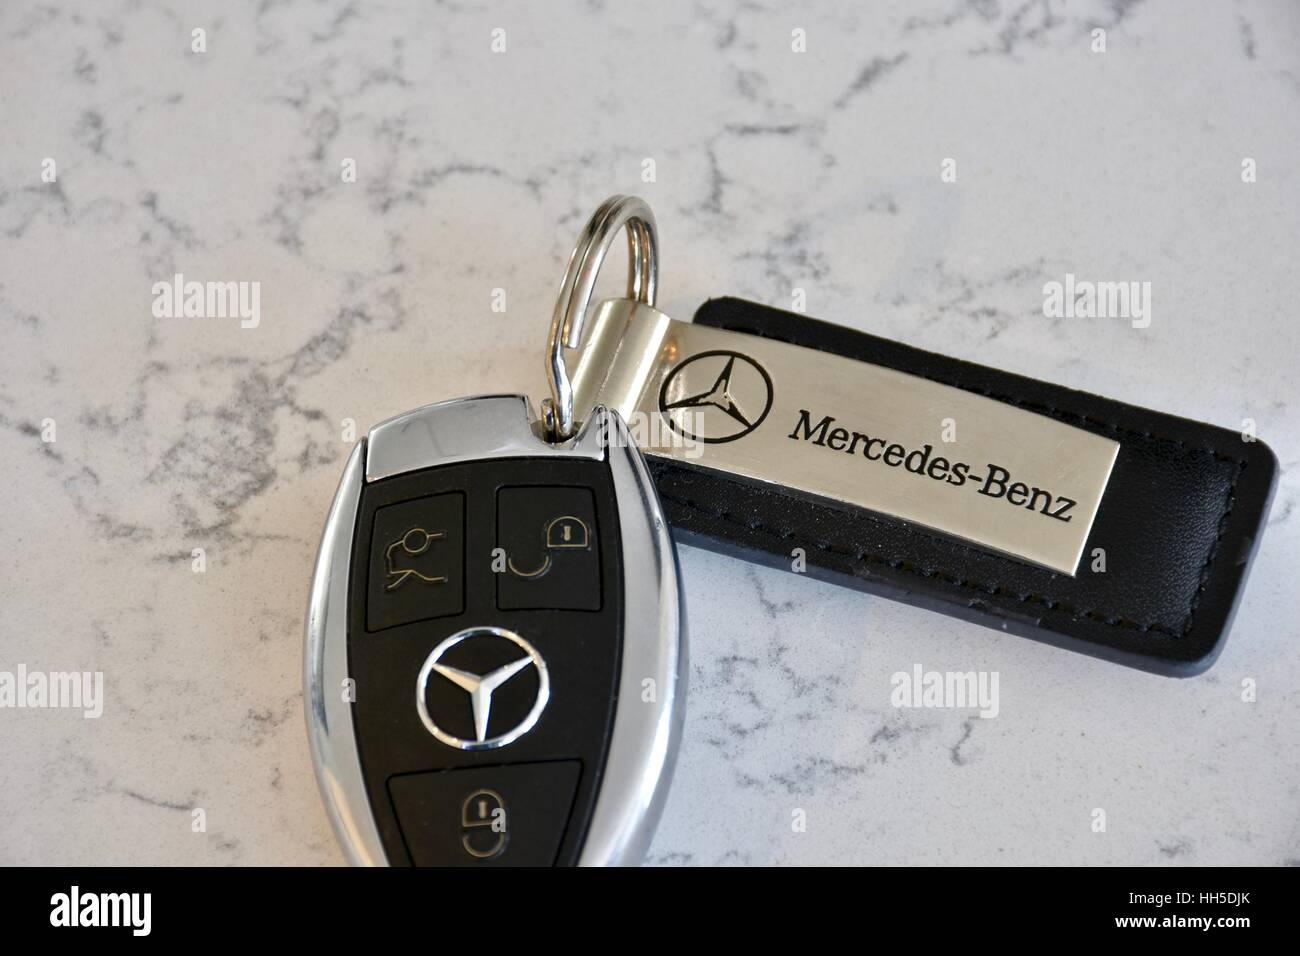 Mercedes benz key fob on a white marble surface stock for Mercedes benz key fob